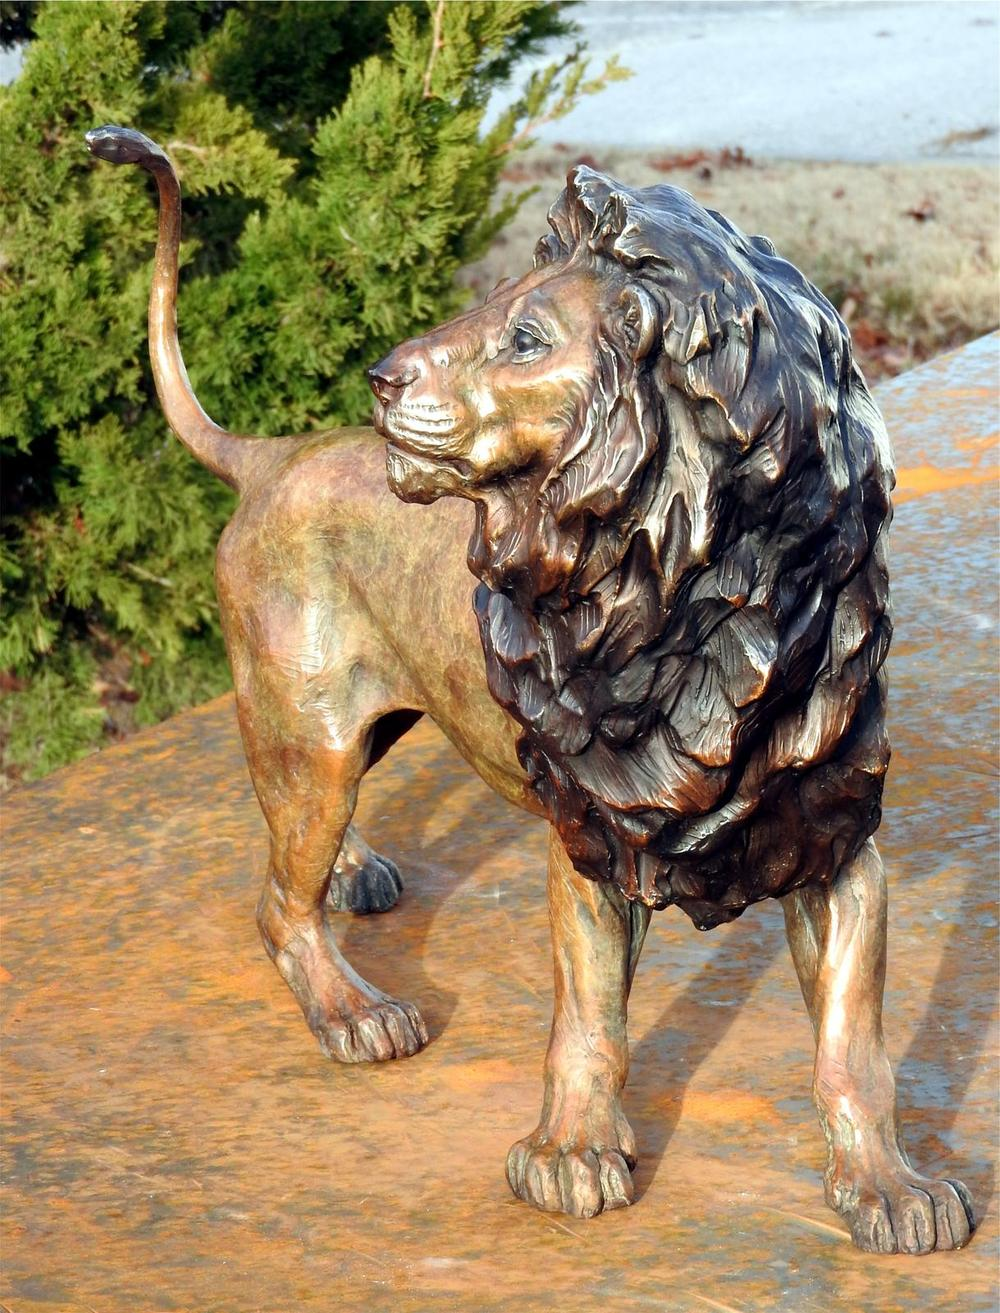 African Male Lion Maquette - Audubon Zoo Lion Sculpture - Running Wild Studio African Lion Sculpture Bronze African Lion